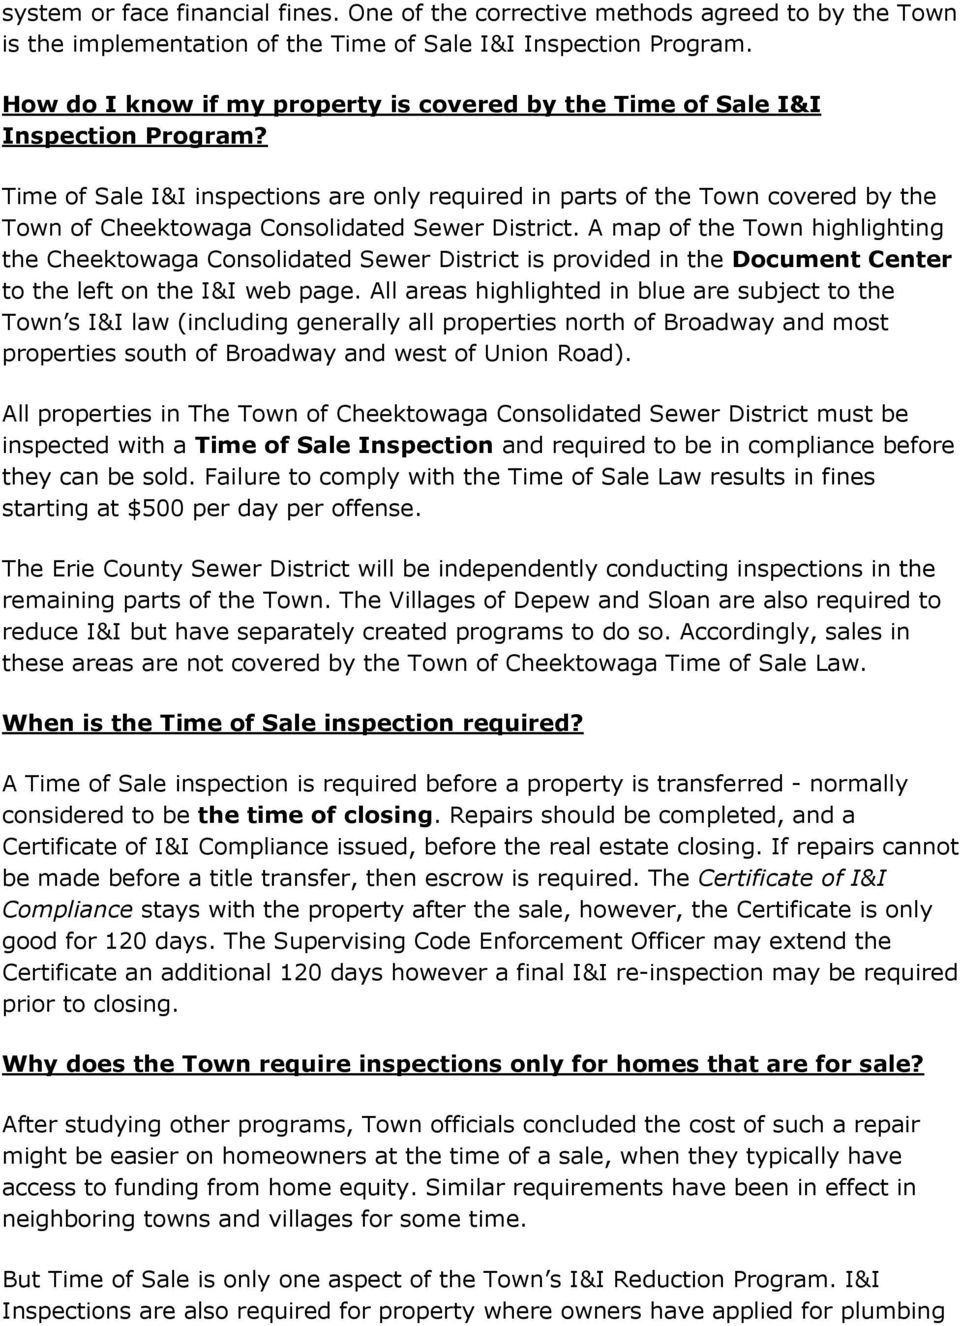 Time of Sale I&I inspections are only required in parts of the Town covered by the Town of Cheektowaga Consolidated Sewer District.